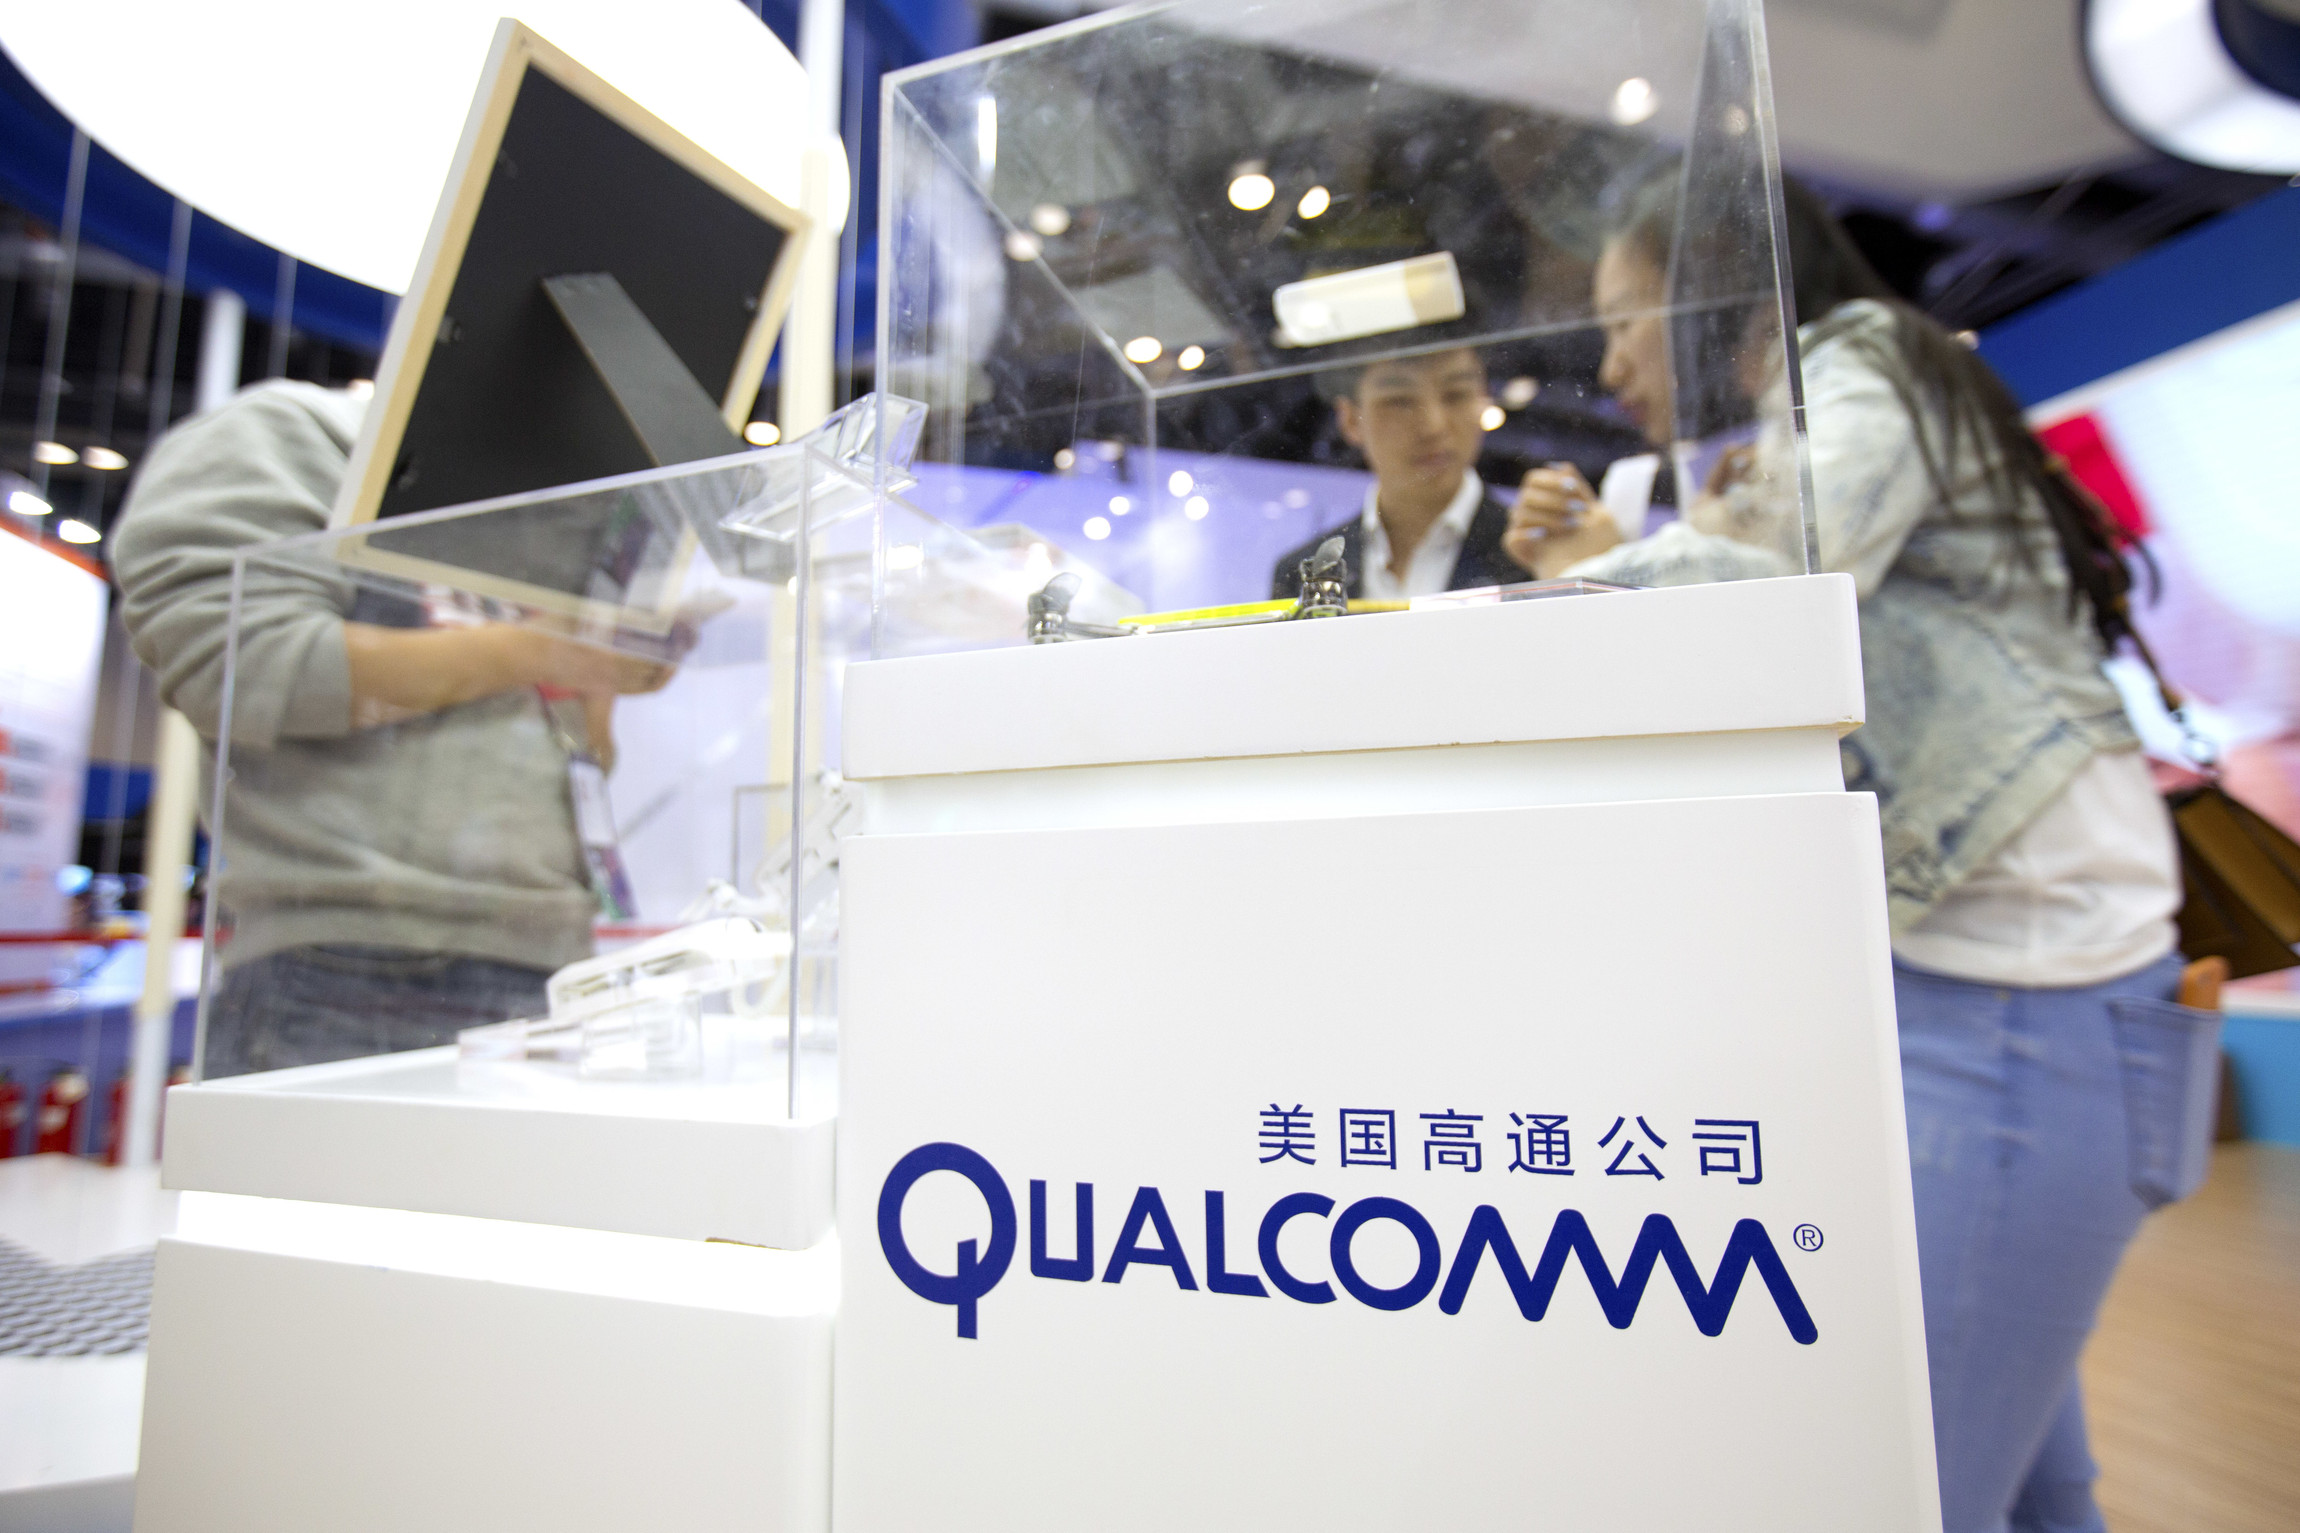 FTC Attack on Qualcomm Benefits China, Harms American Consumers